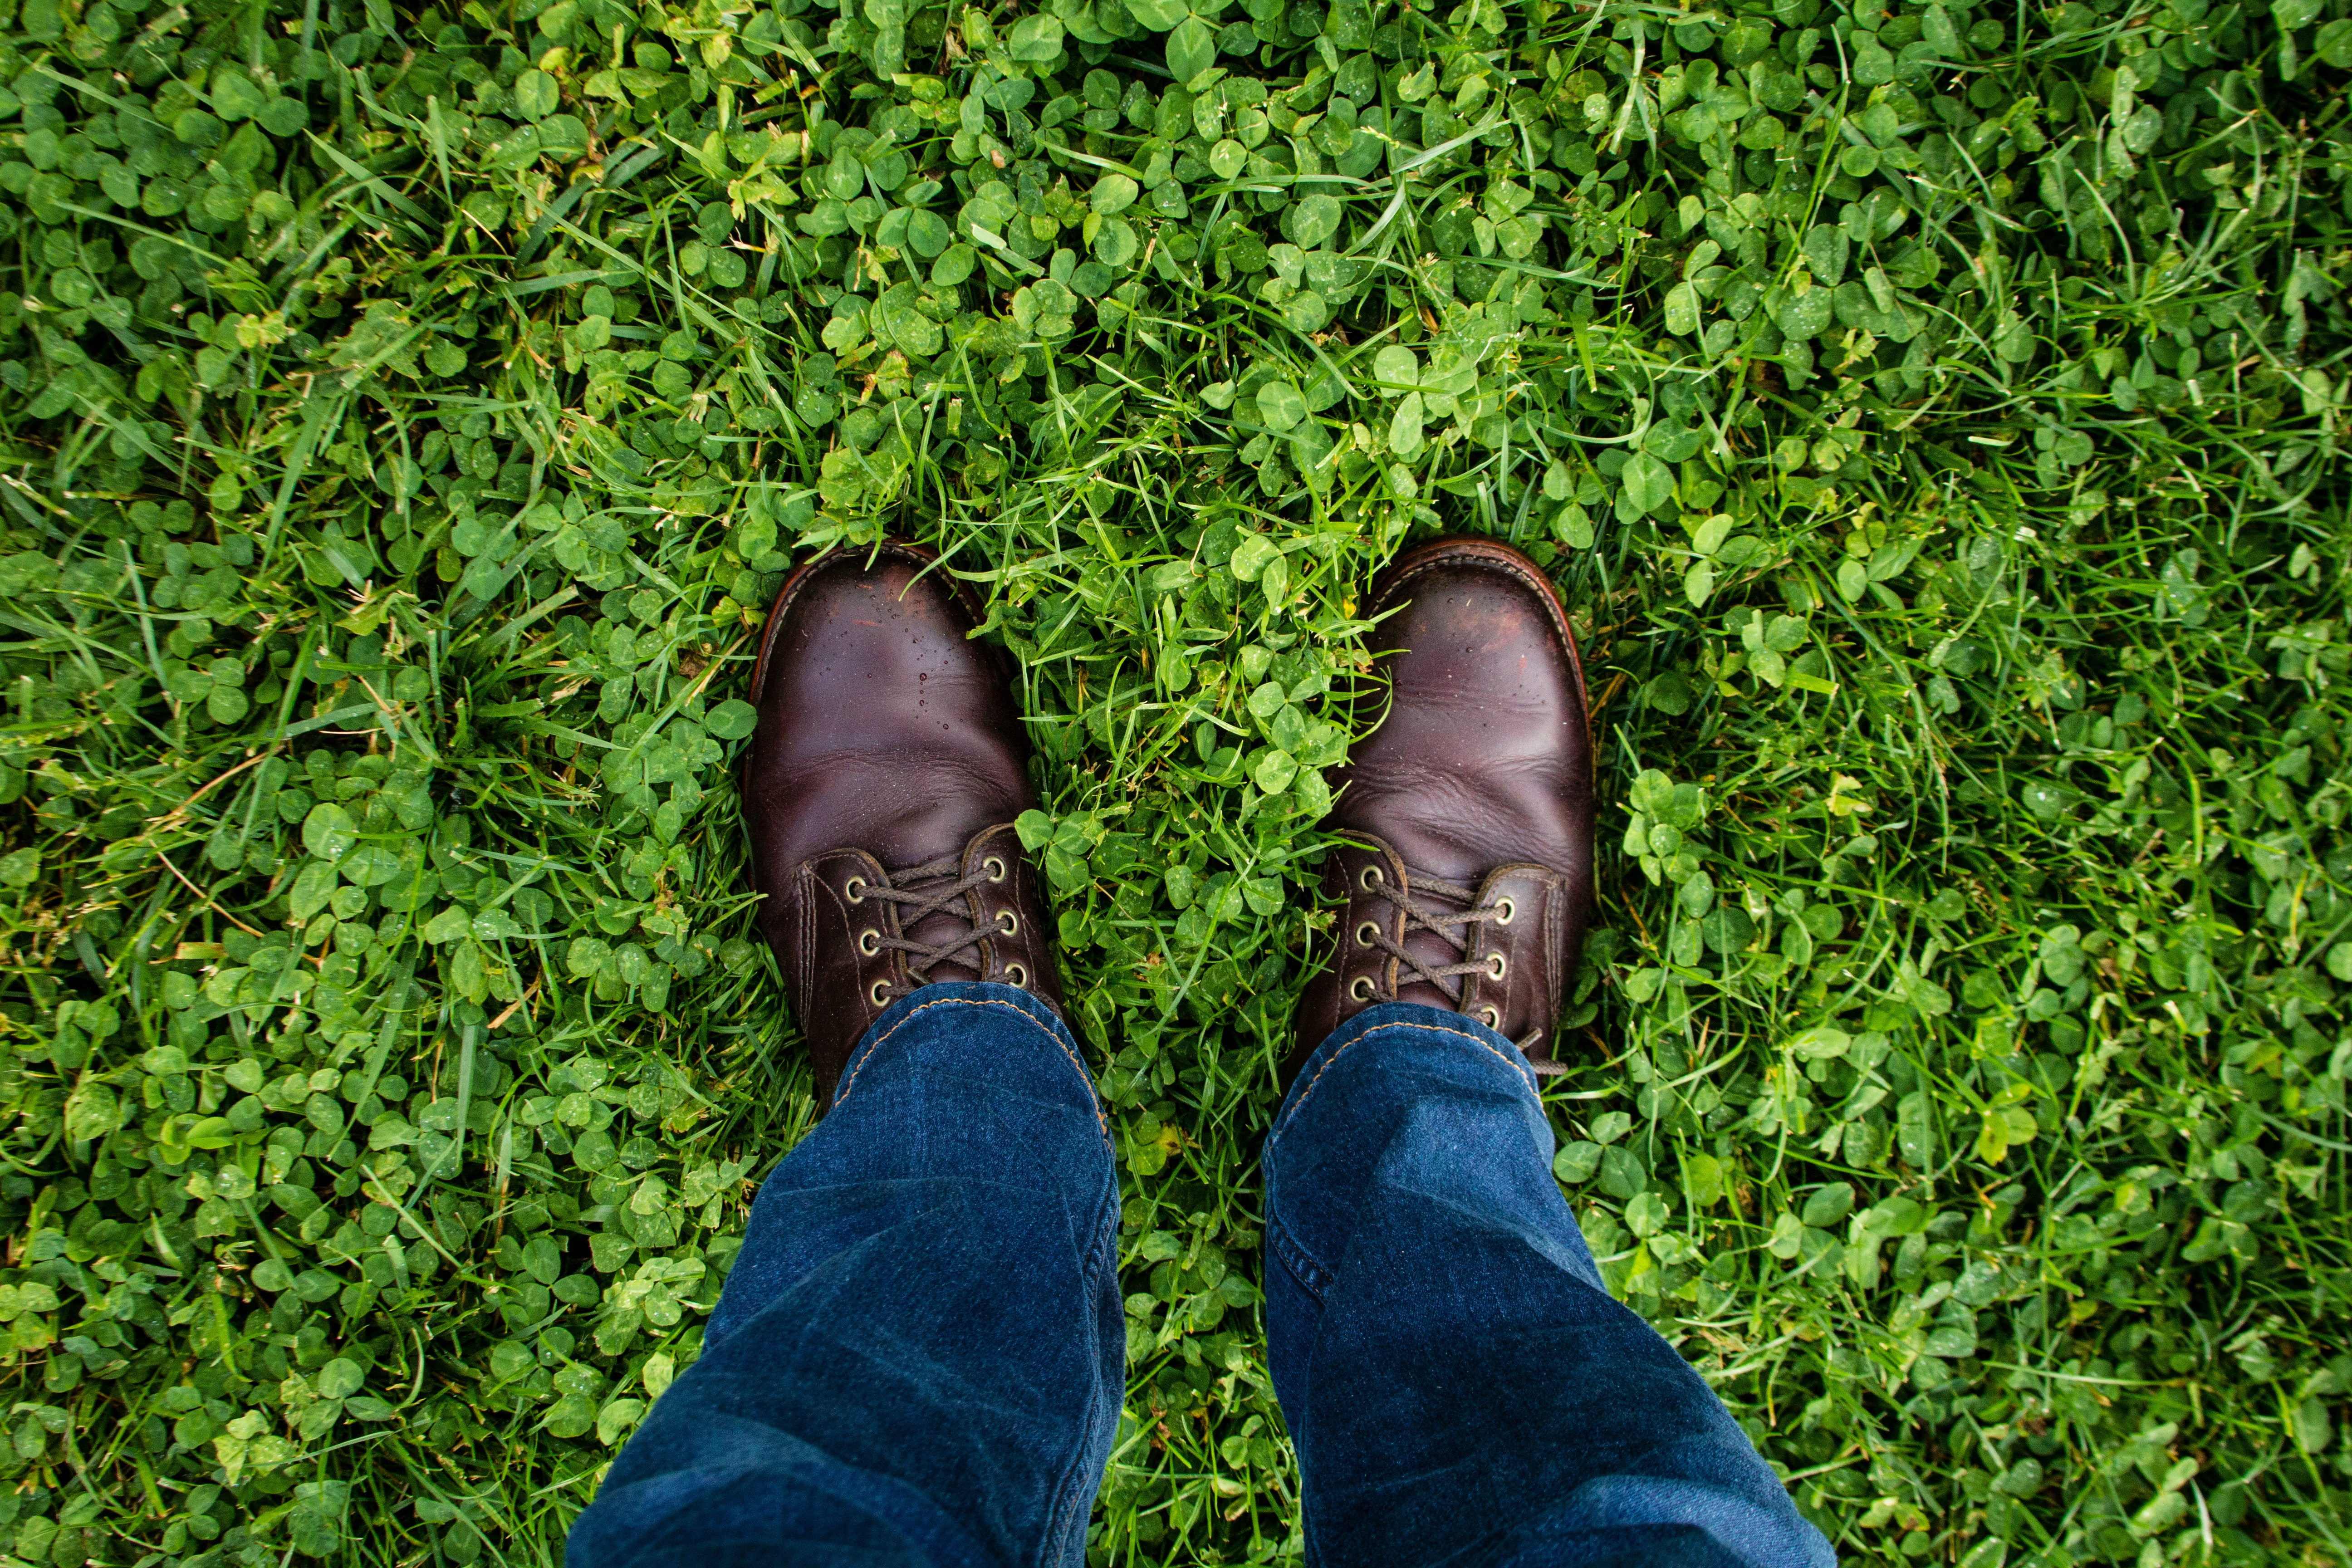 person in blue jeans and wearing pair of brown leather dress shoes standing on green grass